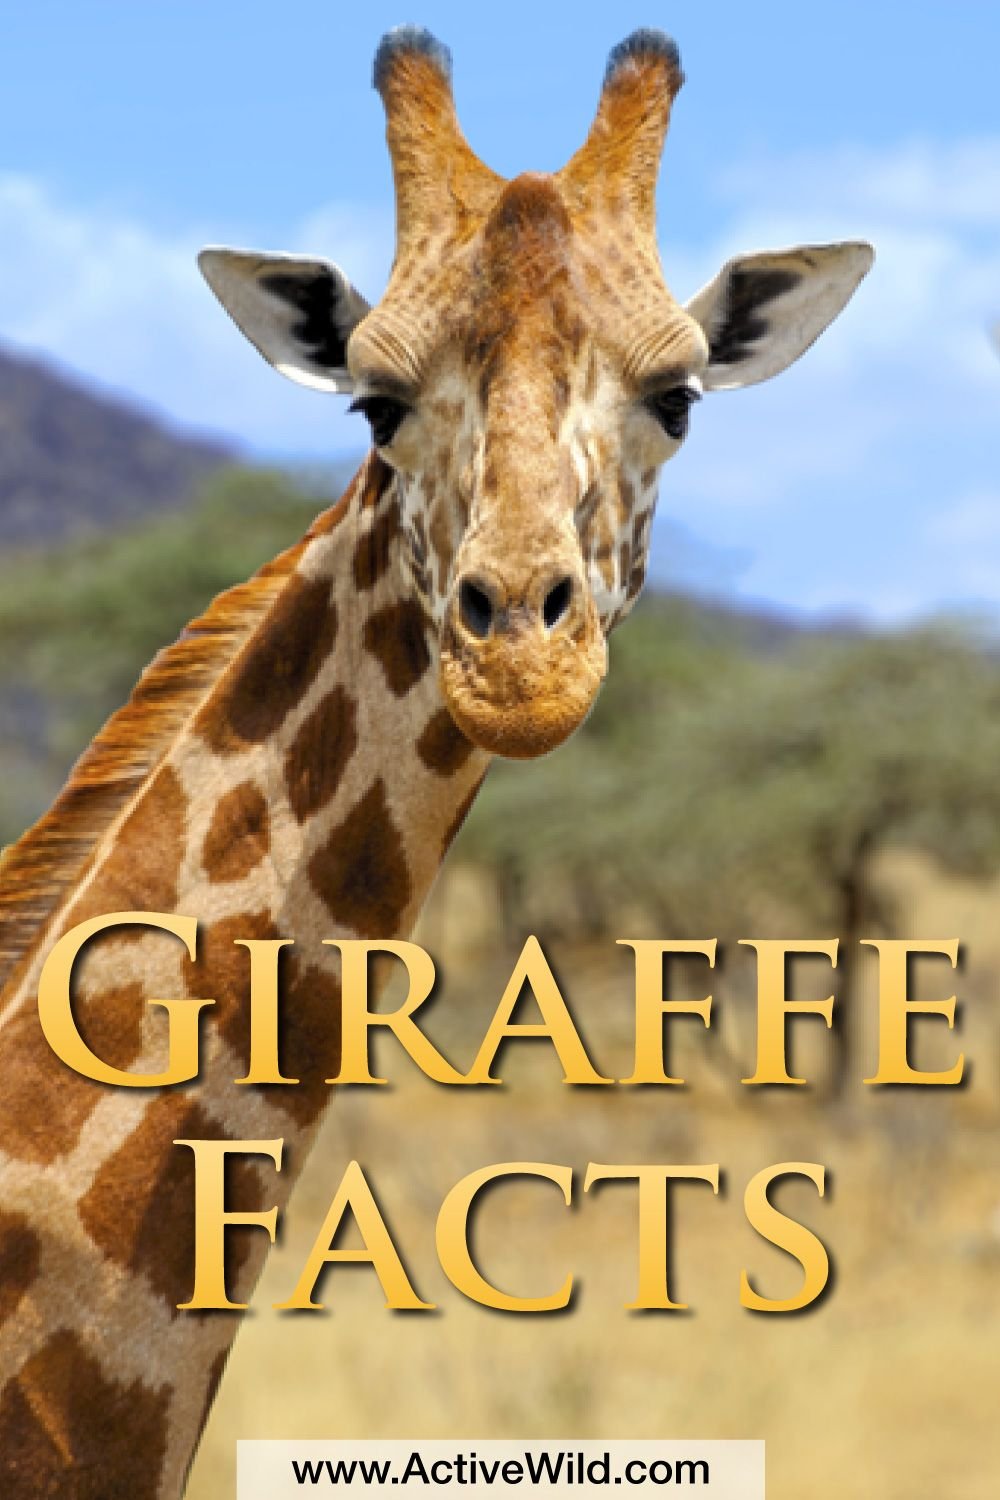 Giraffe Facts For Kids: Information & Pictures from Active ...